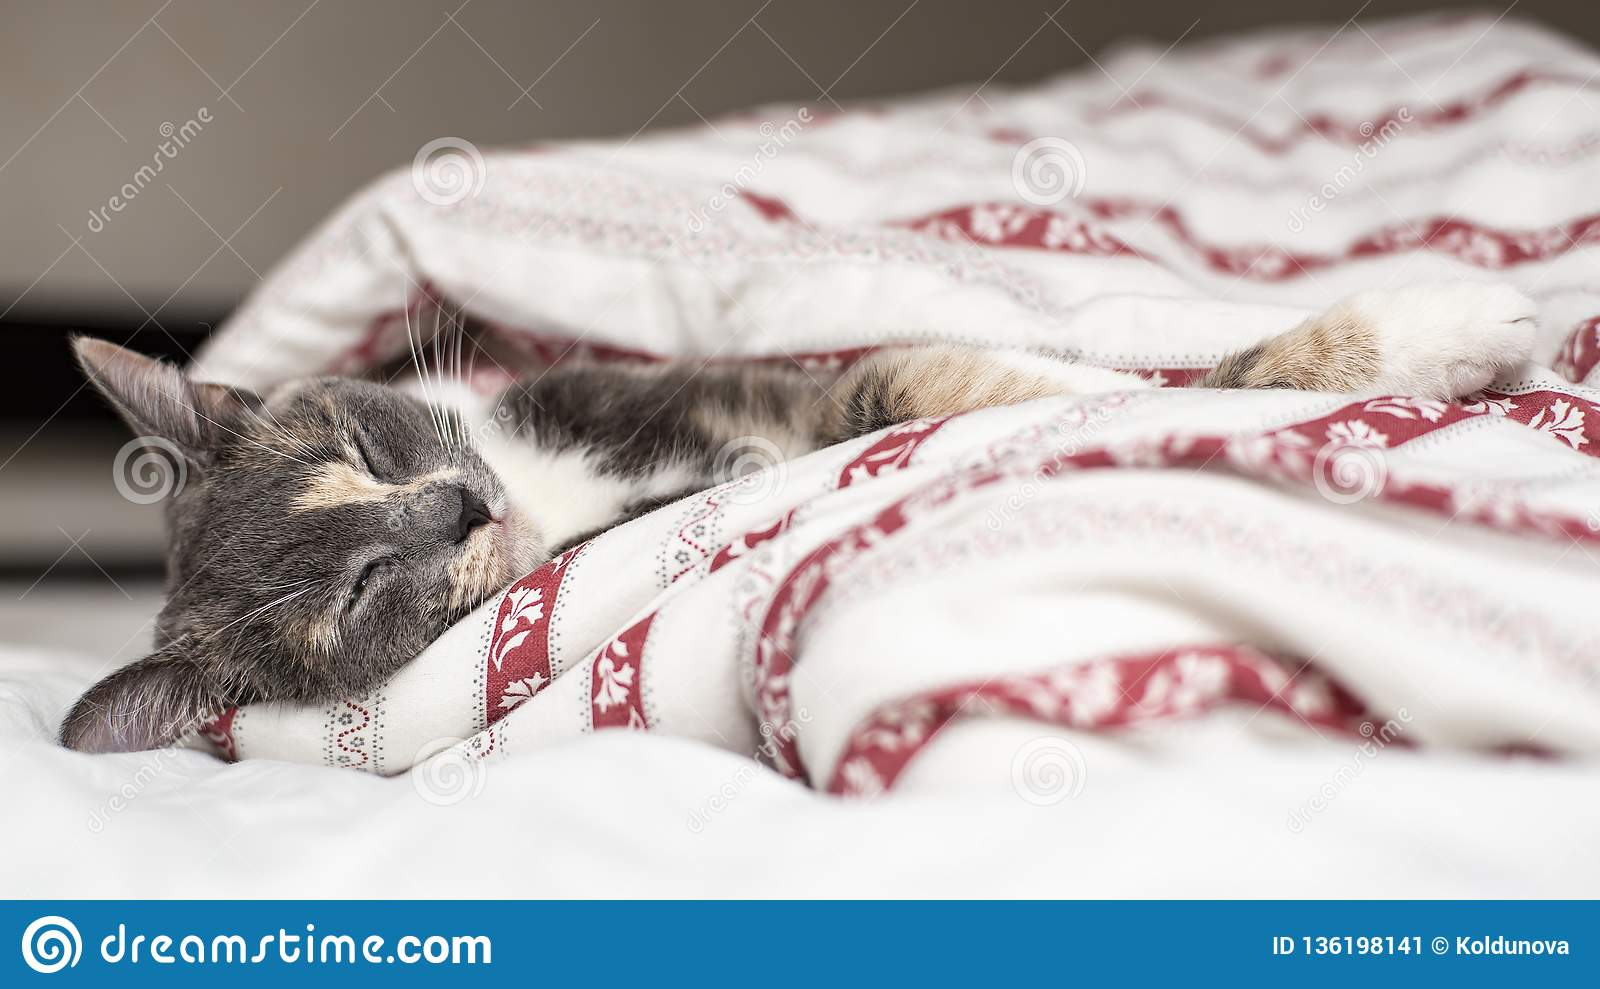 Cute cat sleeping on a bed wrapped in a blanket